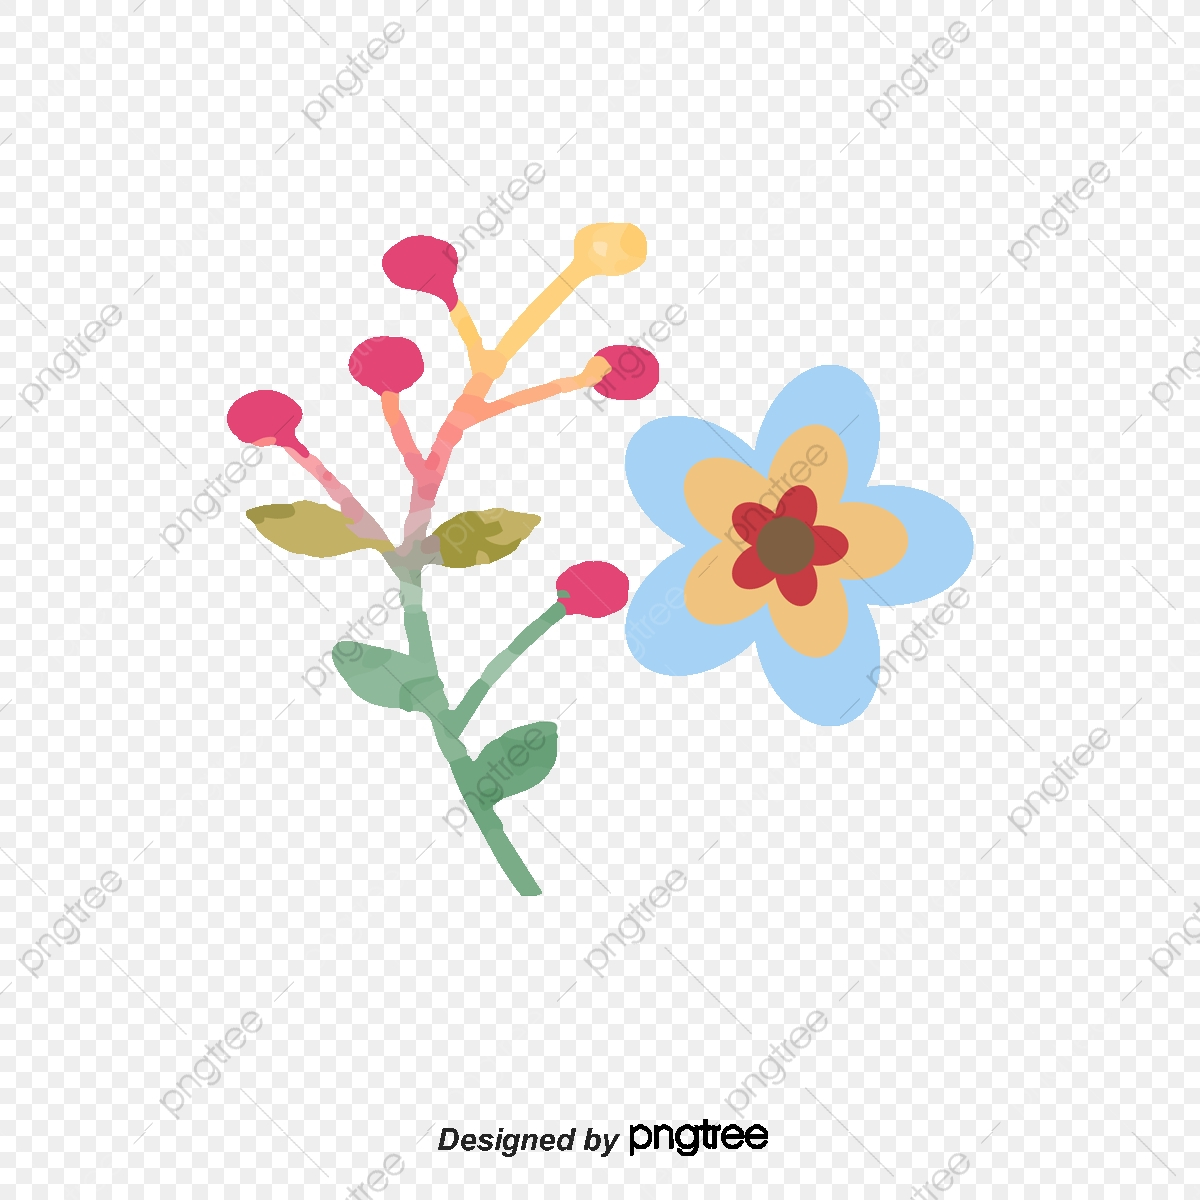 Scandinavian Embroidery Patterns Embroidery Patterns Plant Flowers Embroidered Png And Vector With